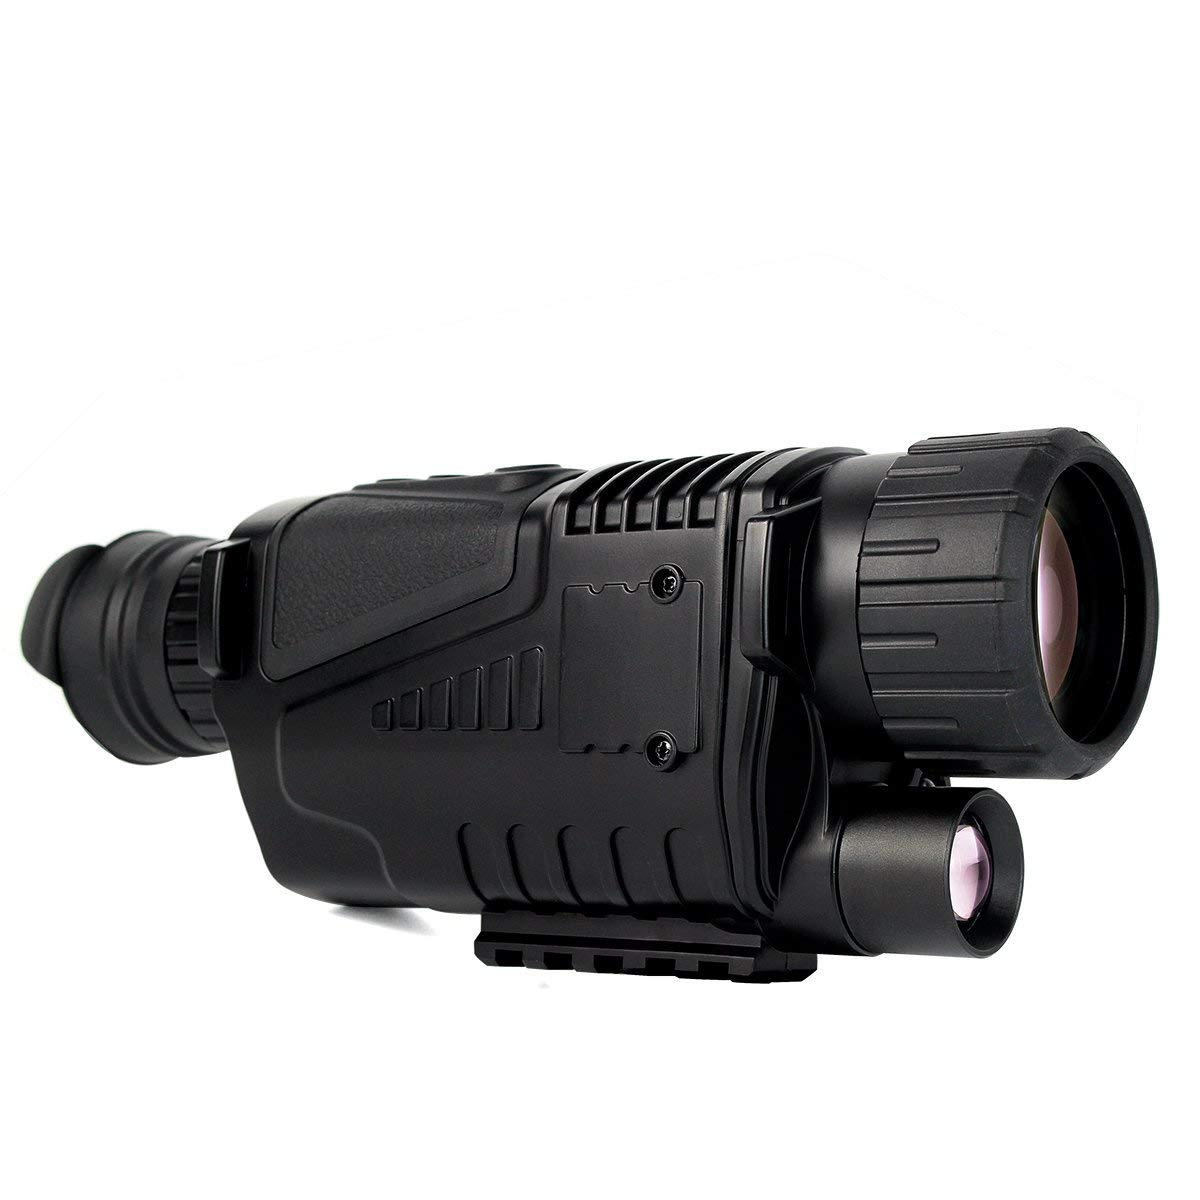 8GB Night Vision Infrared Digital Scope For Hunting Telescope Long Range With Built-in Camera Shoot Photo Recording Video